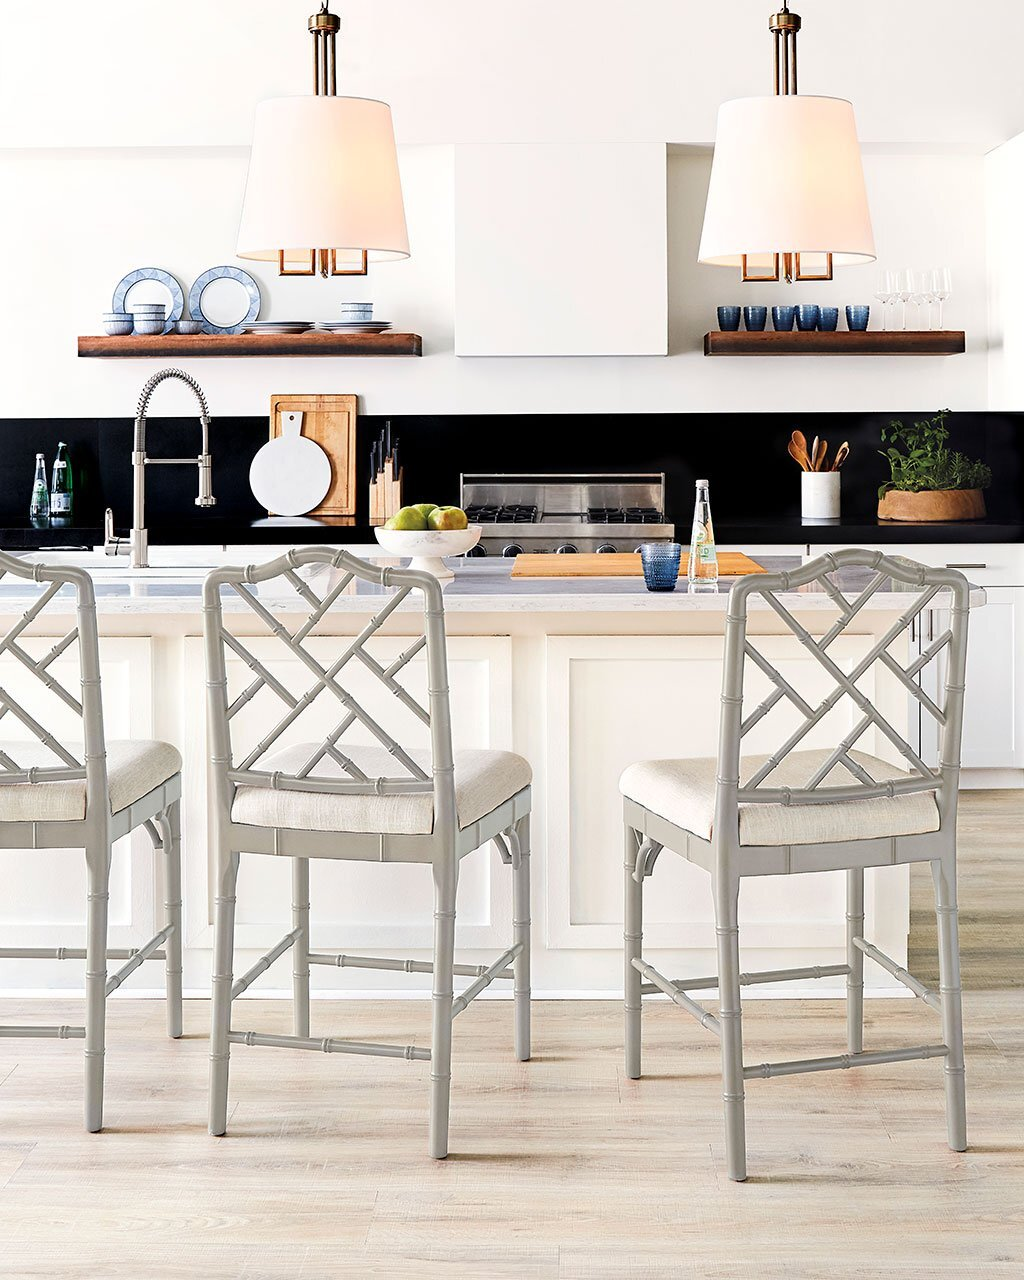 Picture of: Best Barstools And Counter Height Stools For Kitchen Islands Br Br Dvd Interior Design